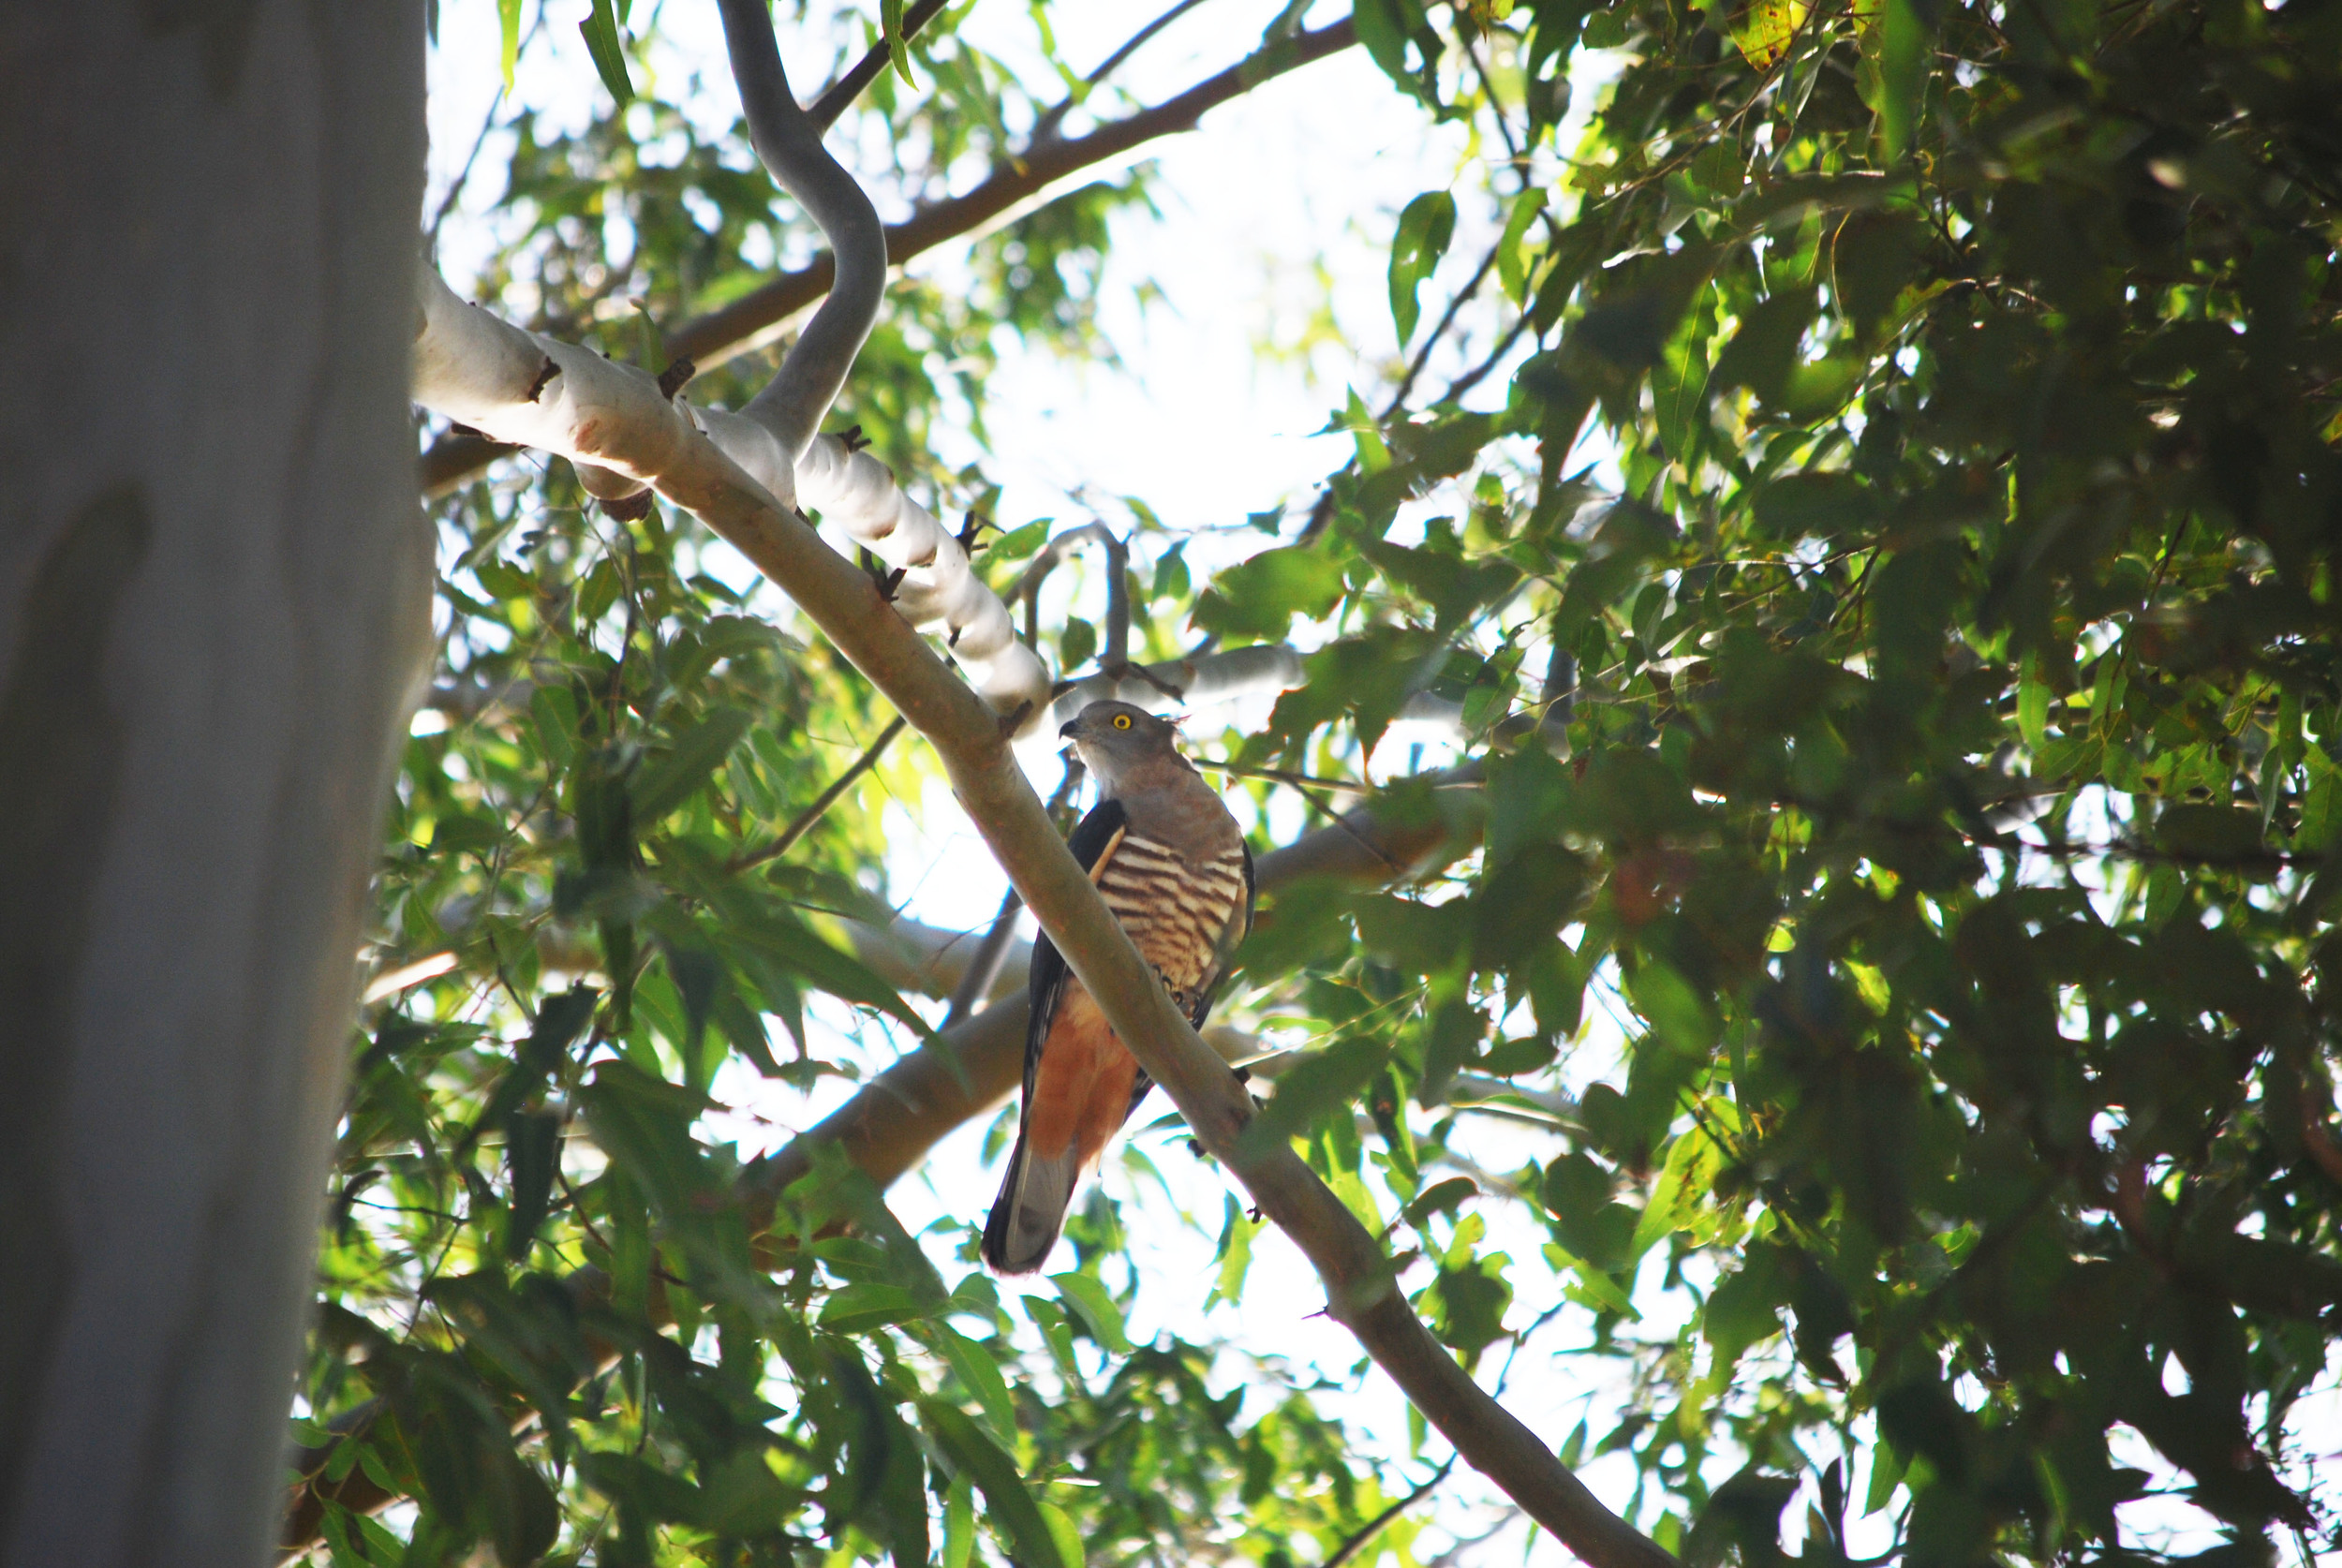 This pacific baza ( Aviceda subcristata ) seems to be a resident of Macquarie University's Sydney campus. From  this post .